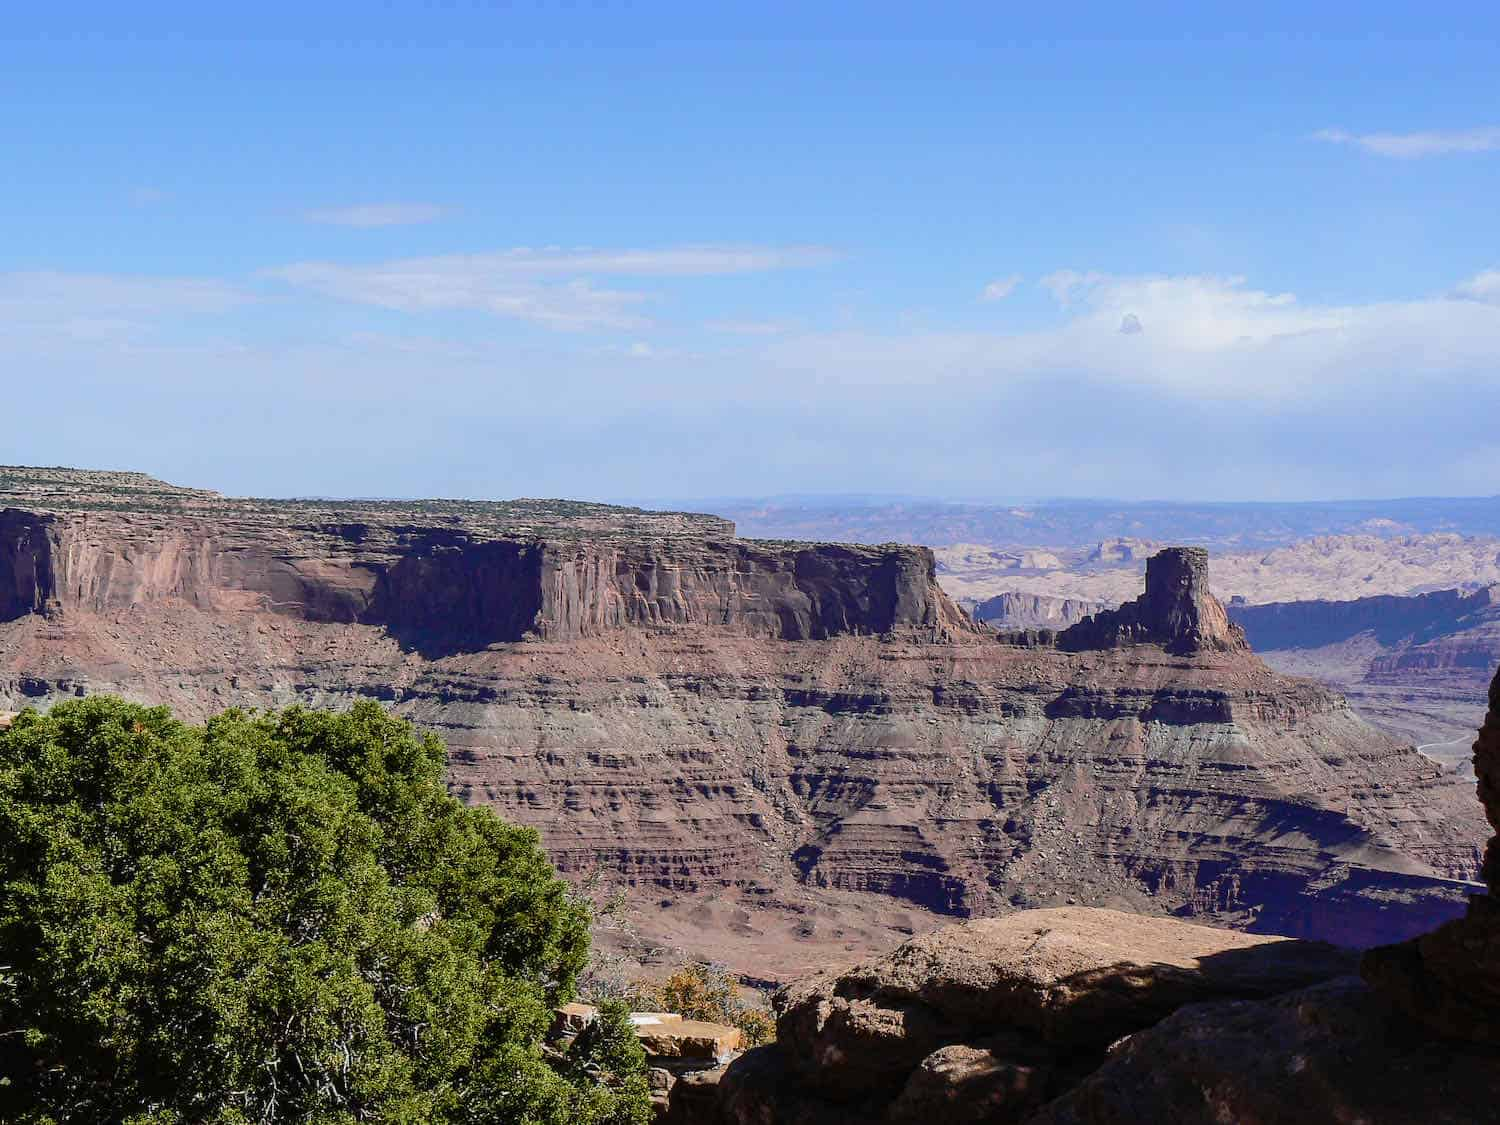 View of layered rocks in buttes at Dead Horse Point State Park.